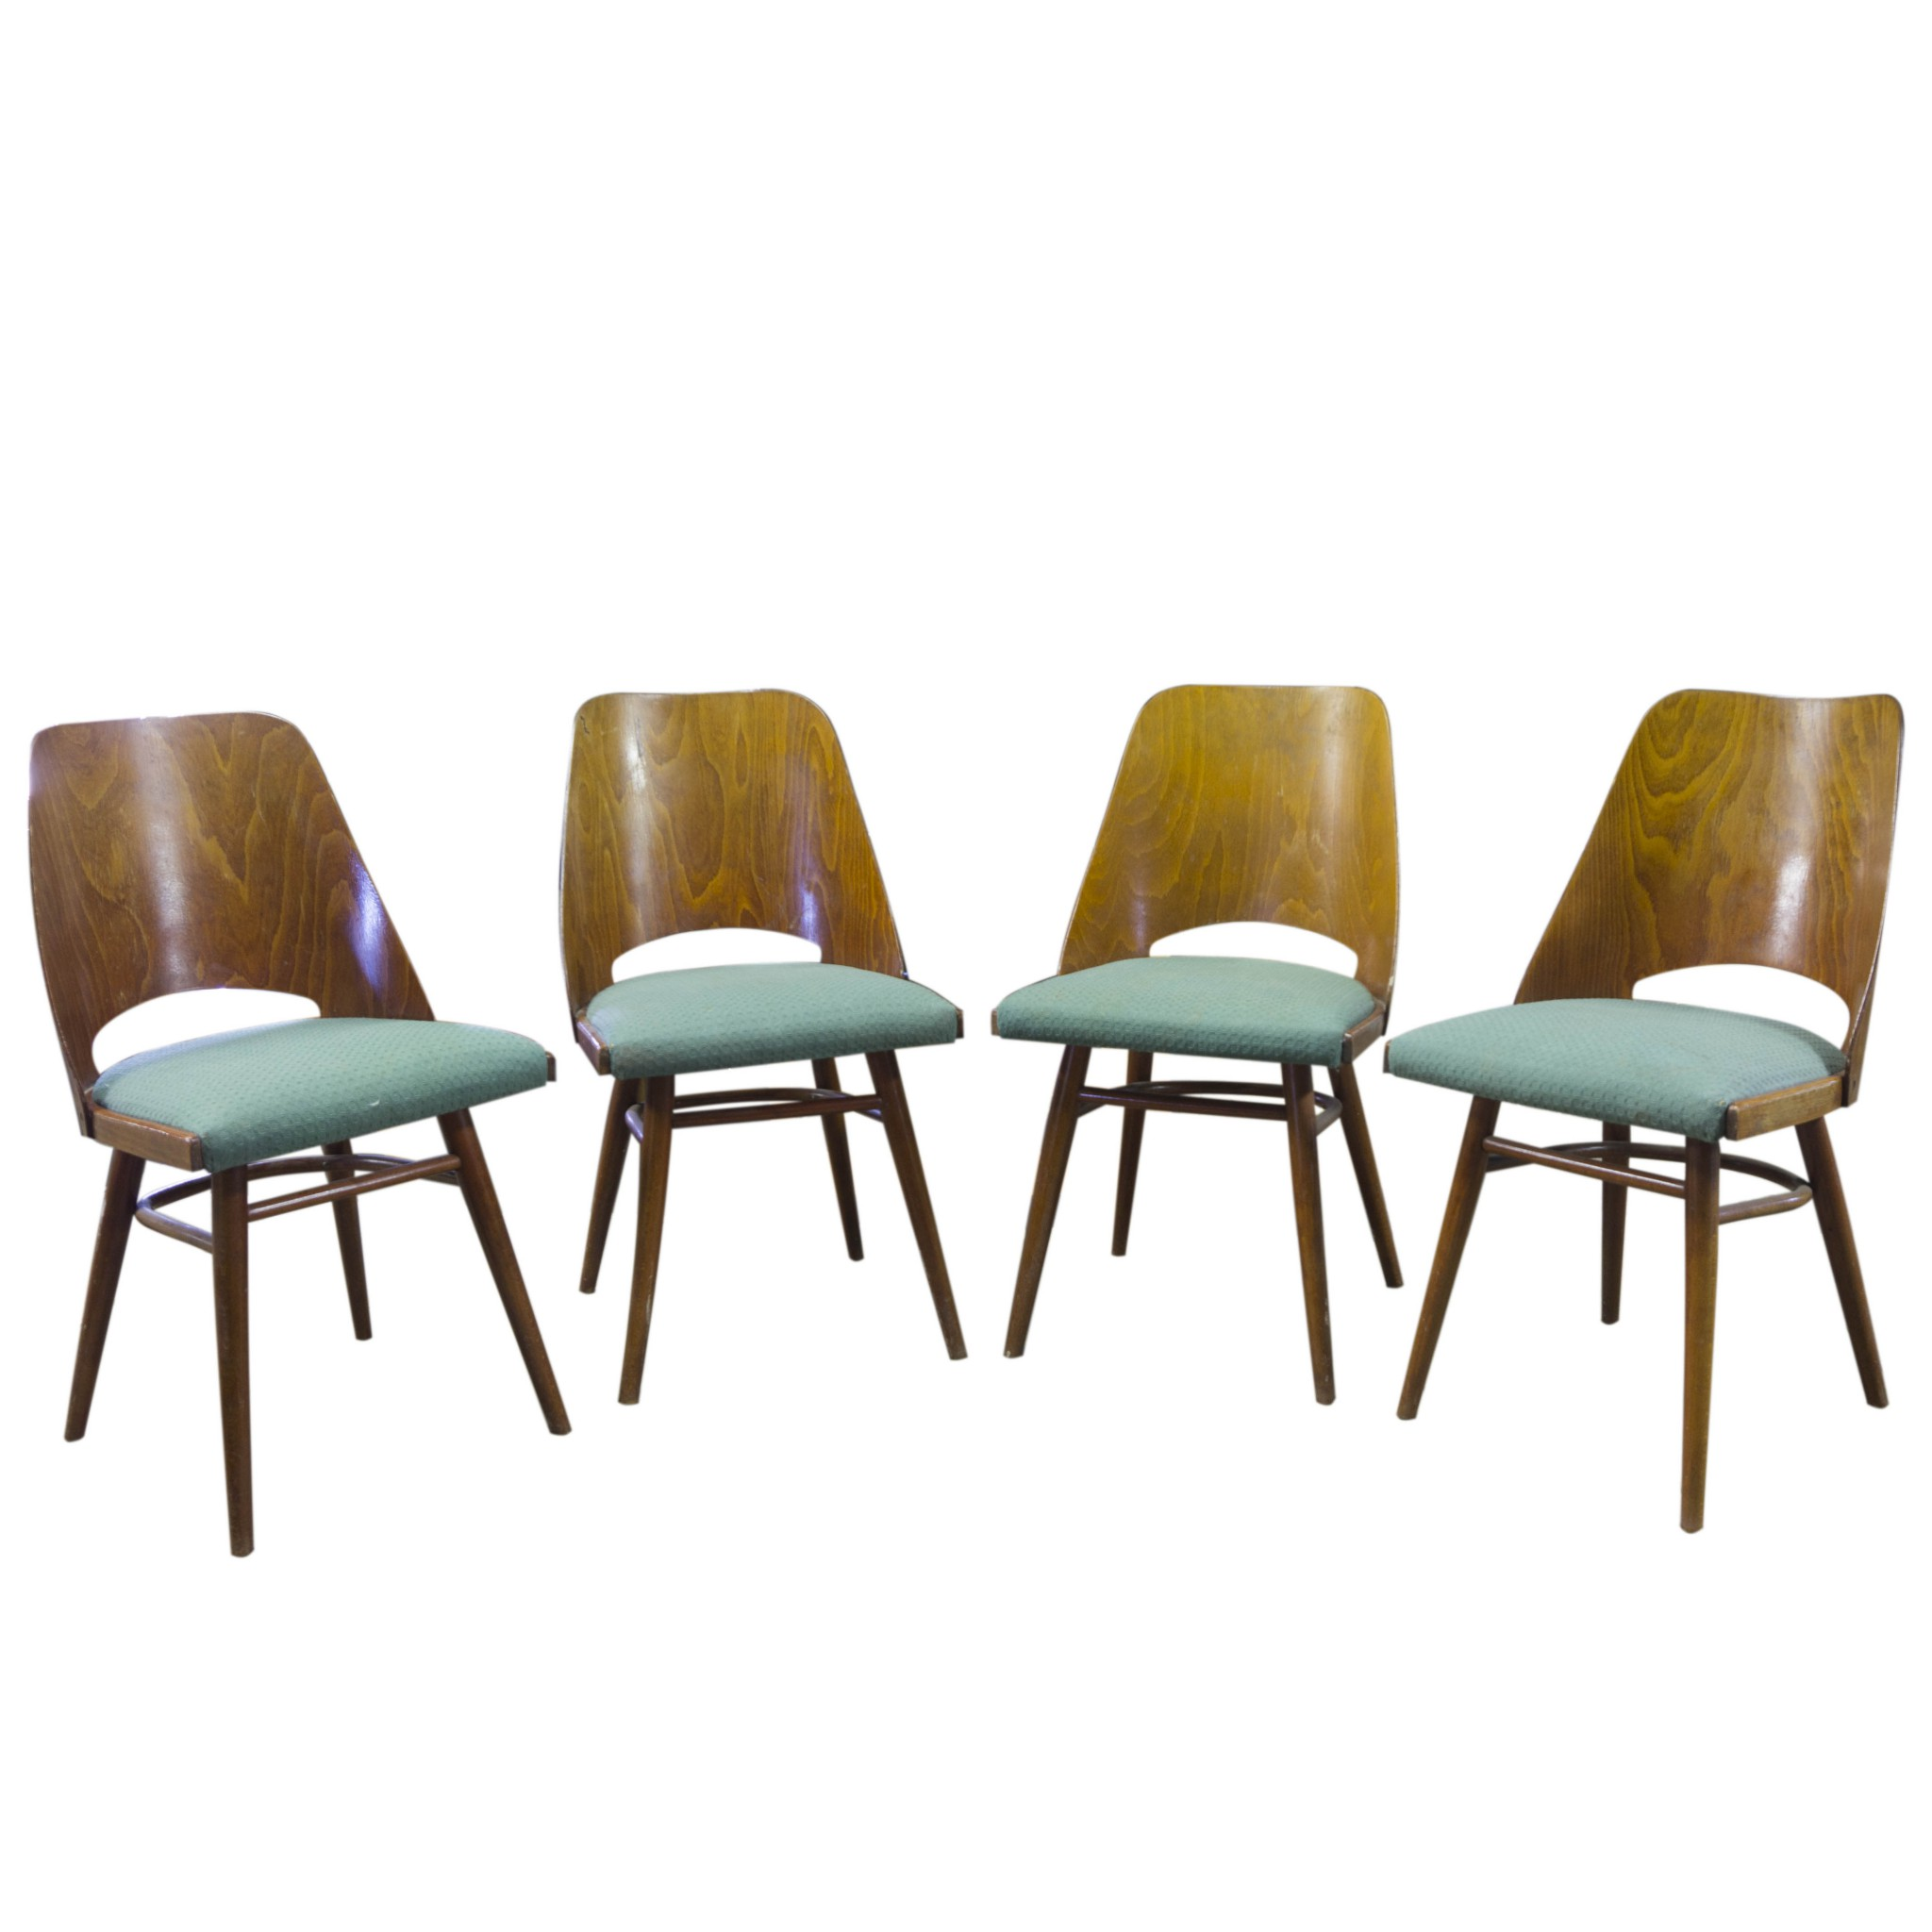 Vintage Chairs Mid Century Brussels Style